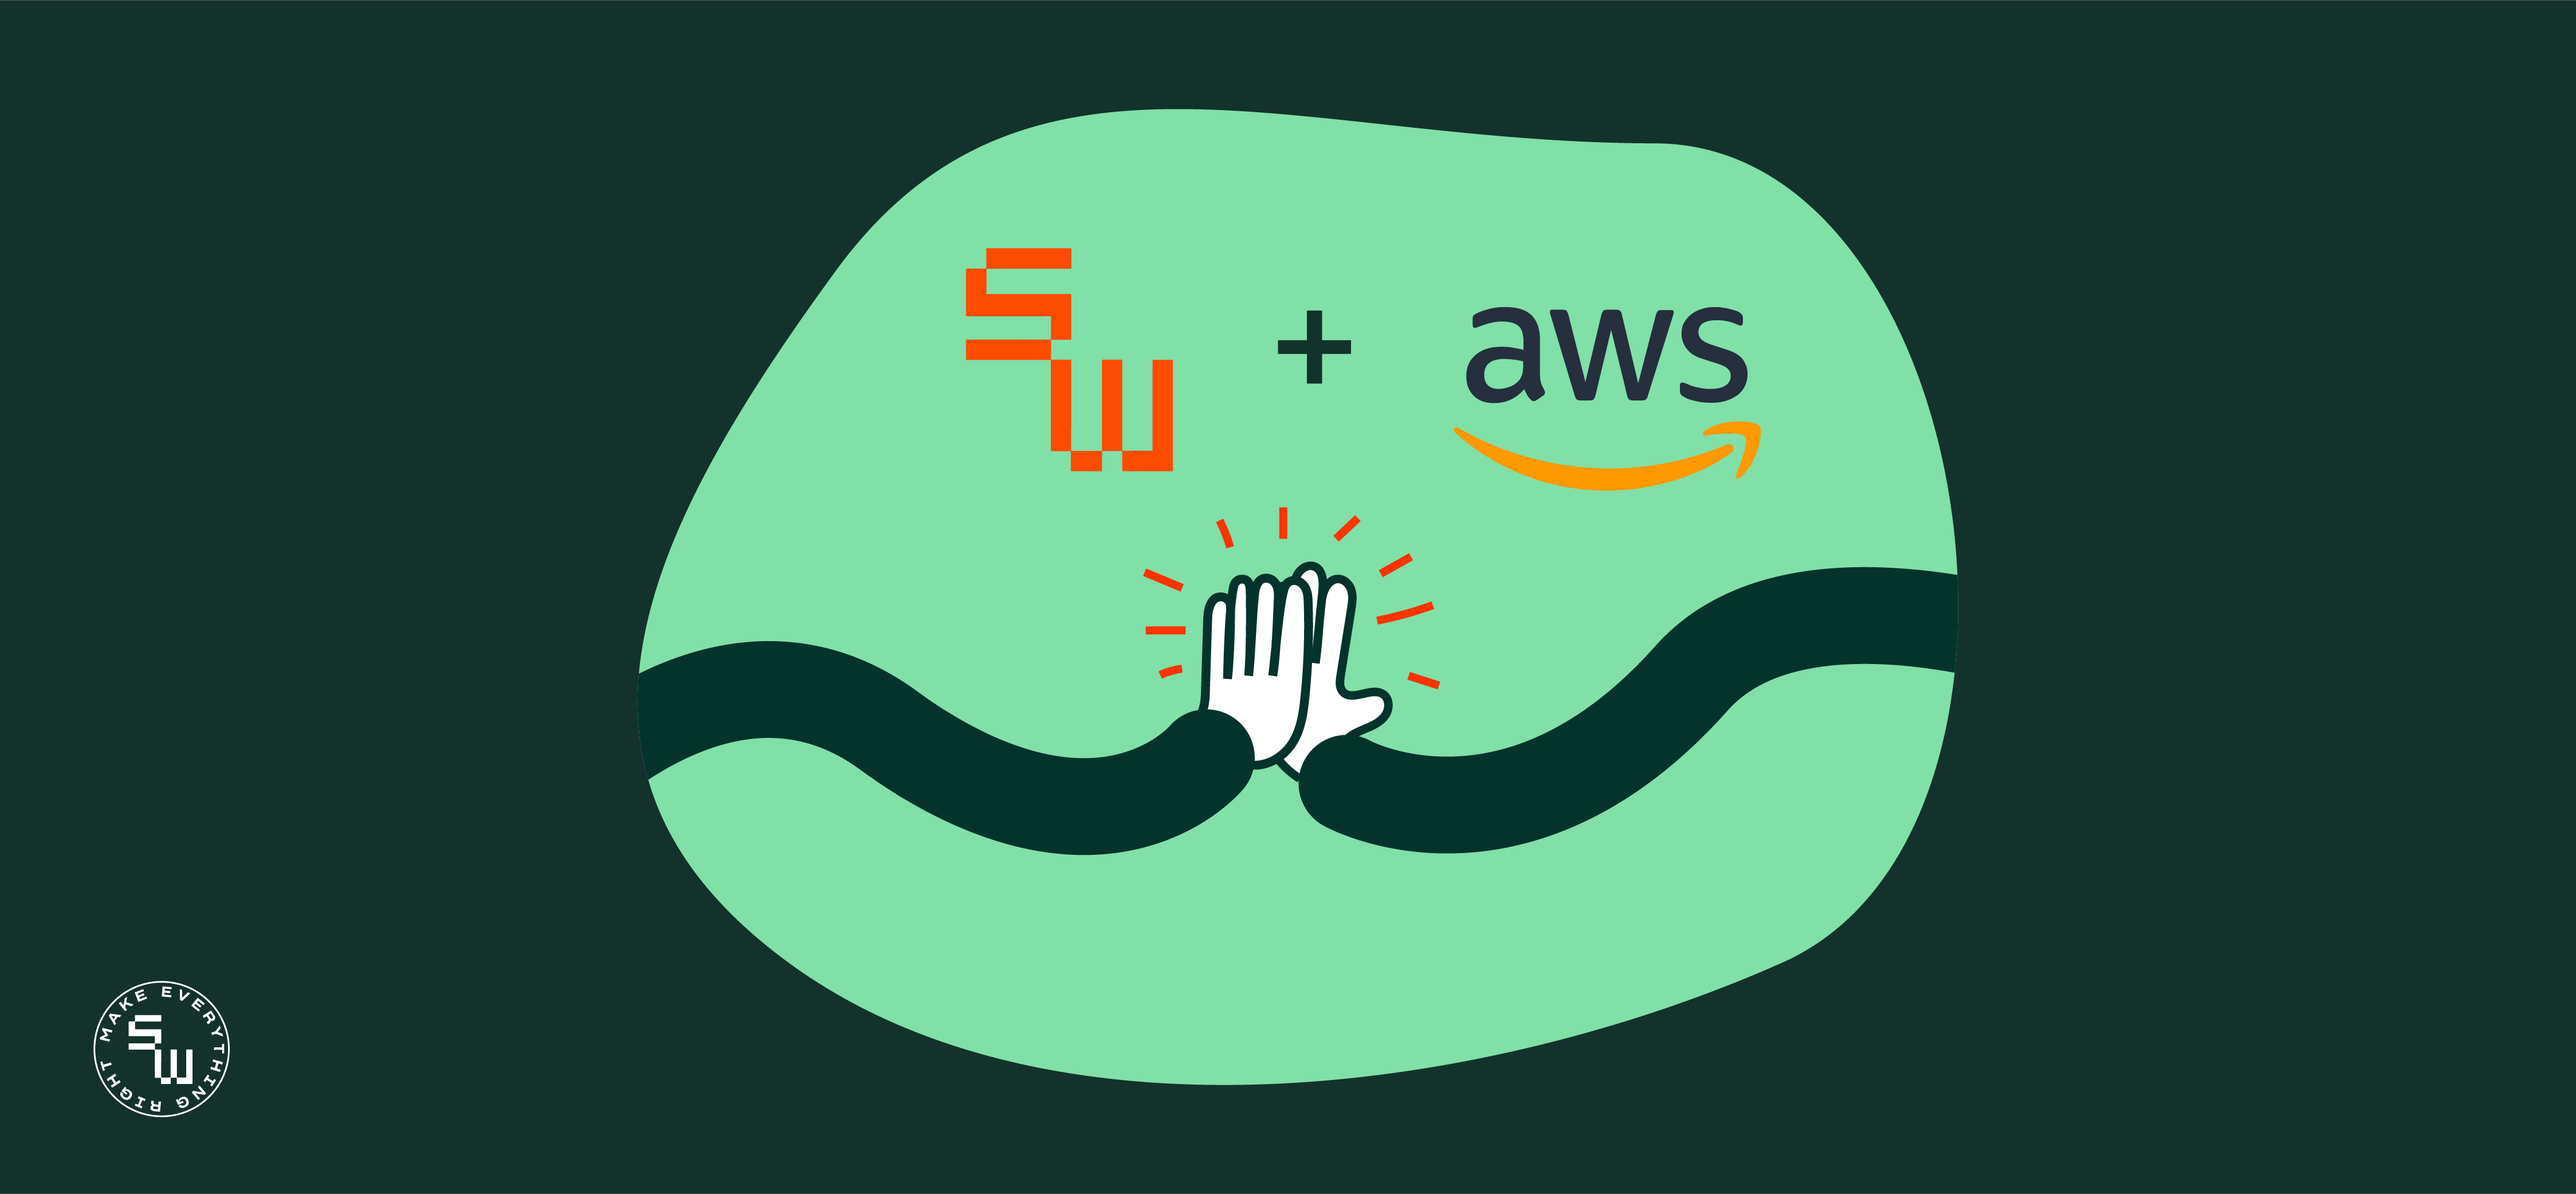 SOUTHWORKS announced support for the AWS for Media & Entertainment initiative from Amazon Web Services (AWS) to accelerate migration of media workflows and innovation for Direct-to-consumer and OTT Streaming.